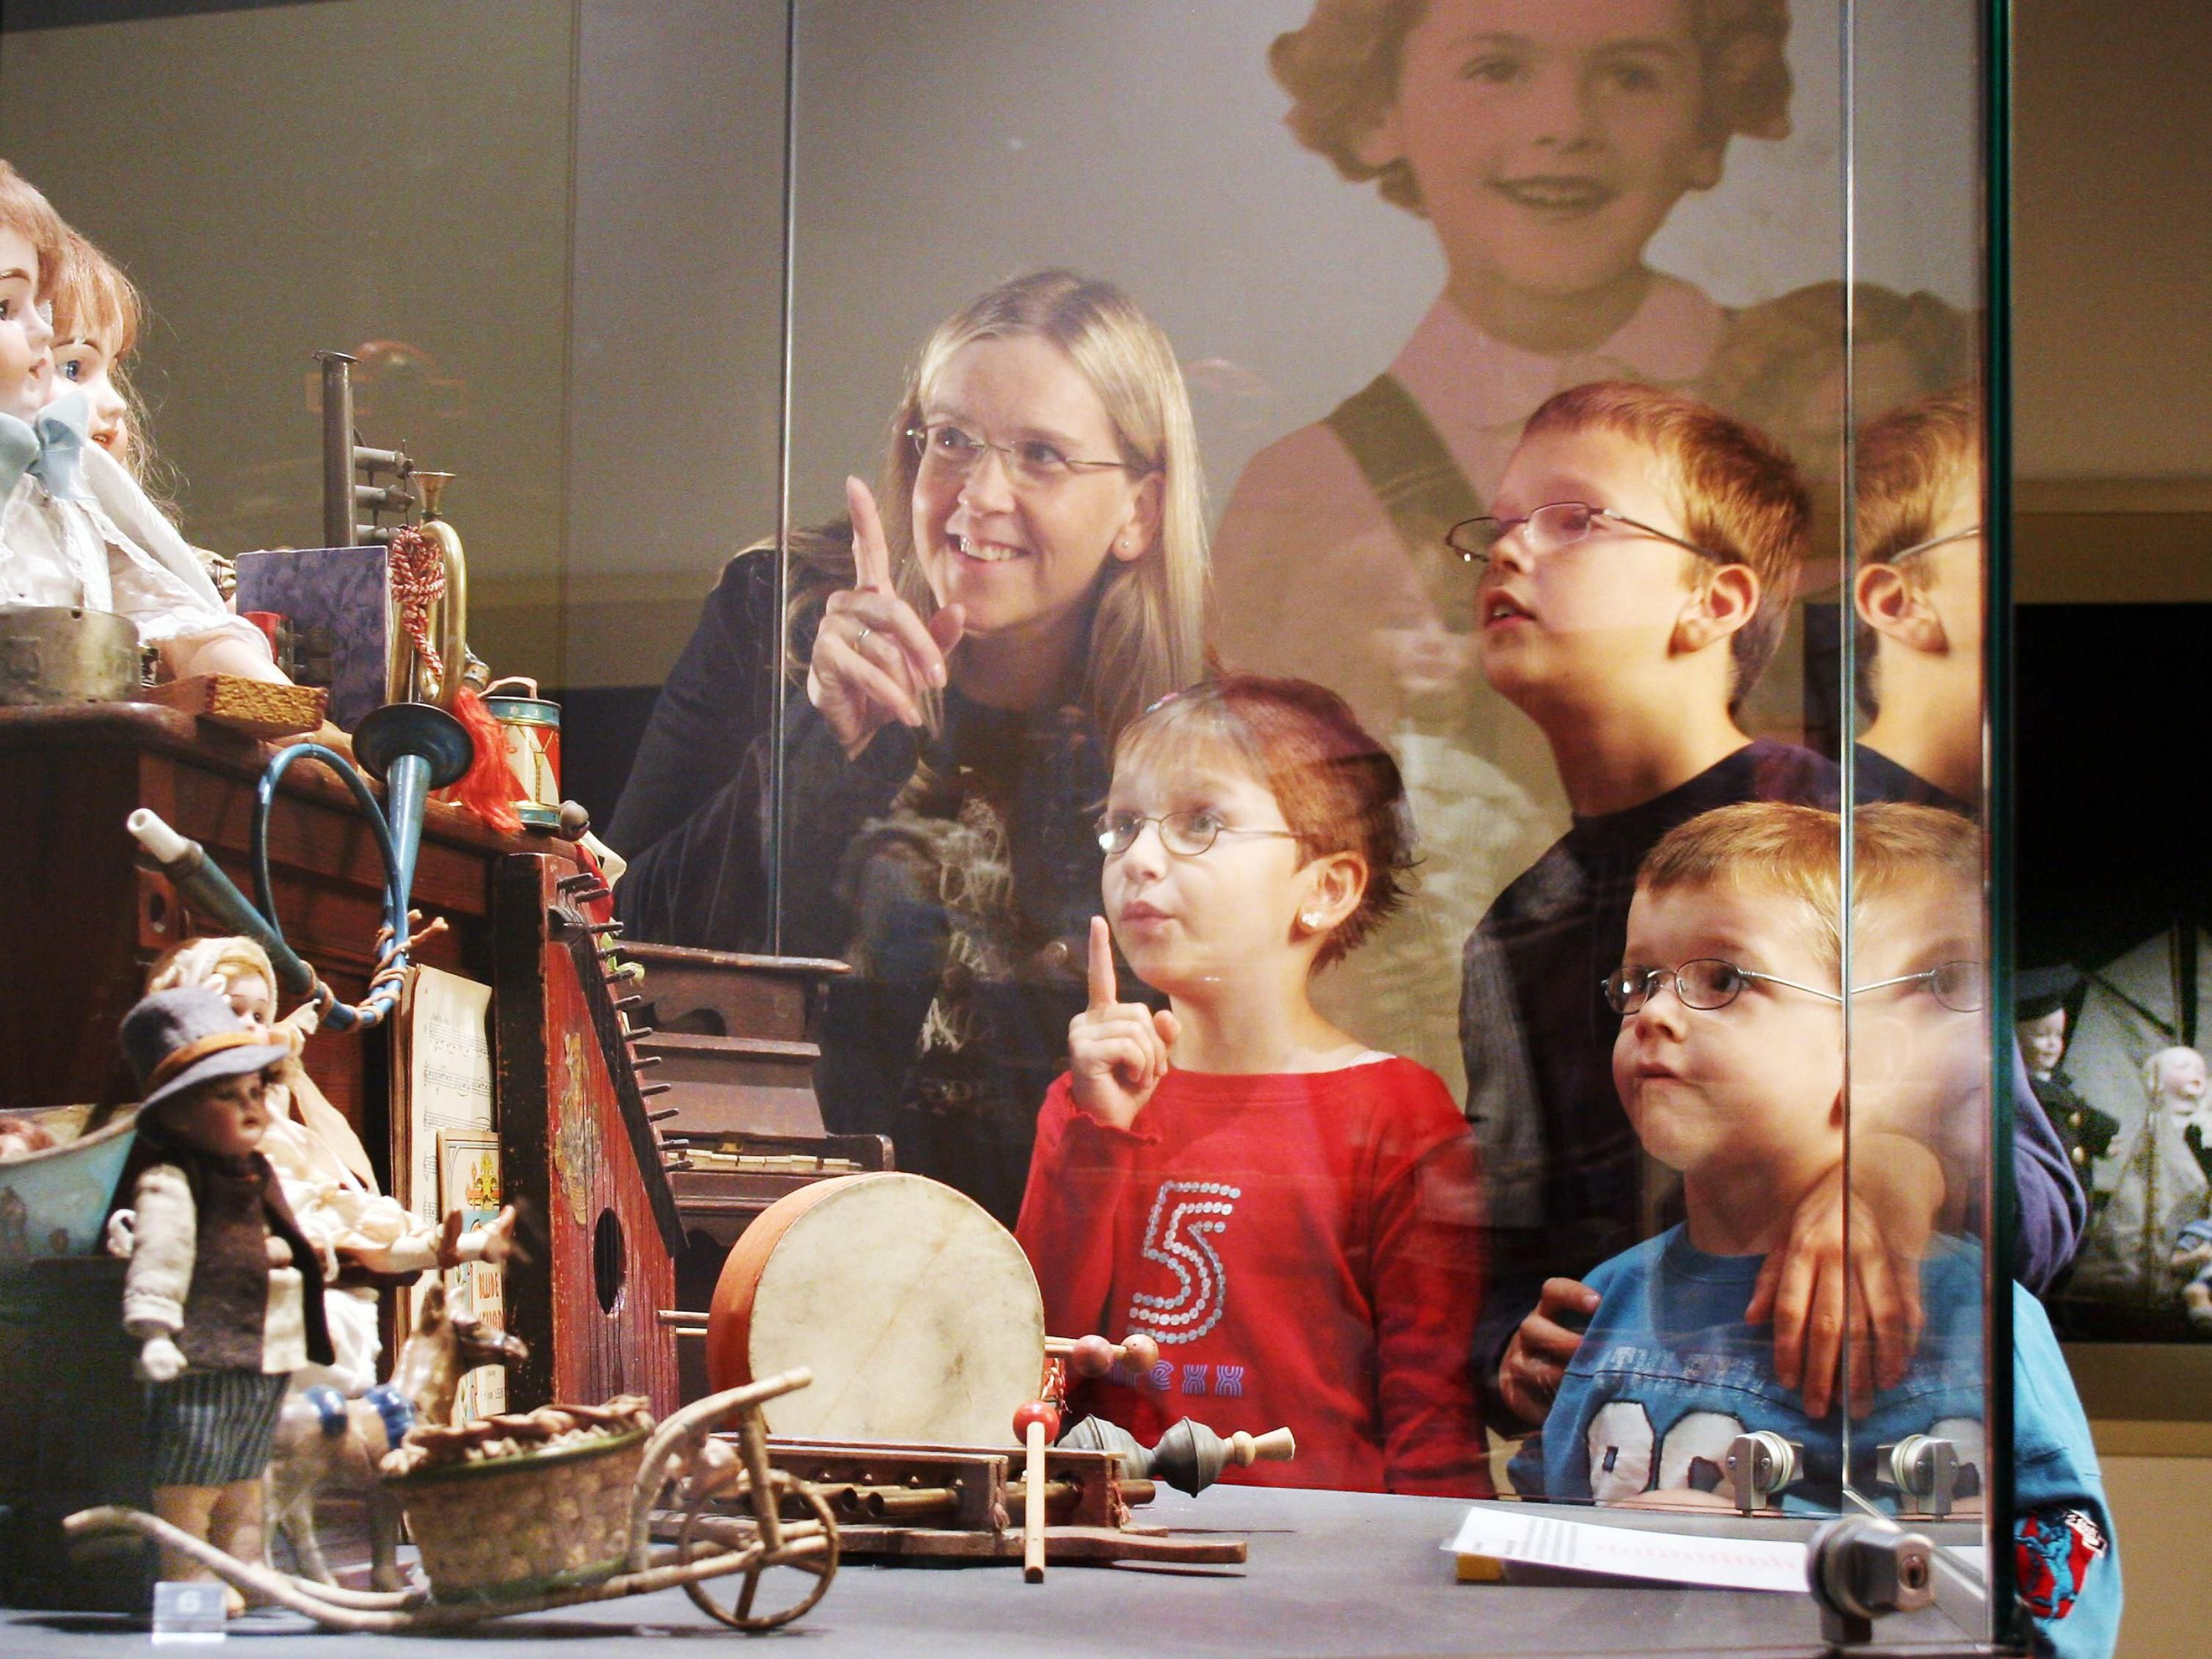 Toy Museum boasts one of the largest collections of toys in Europe